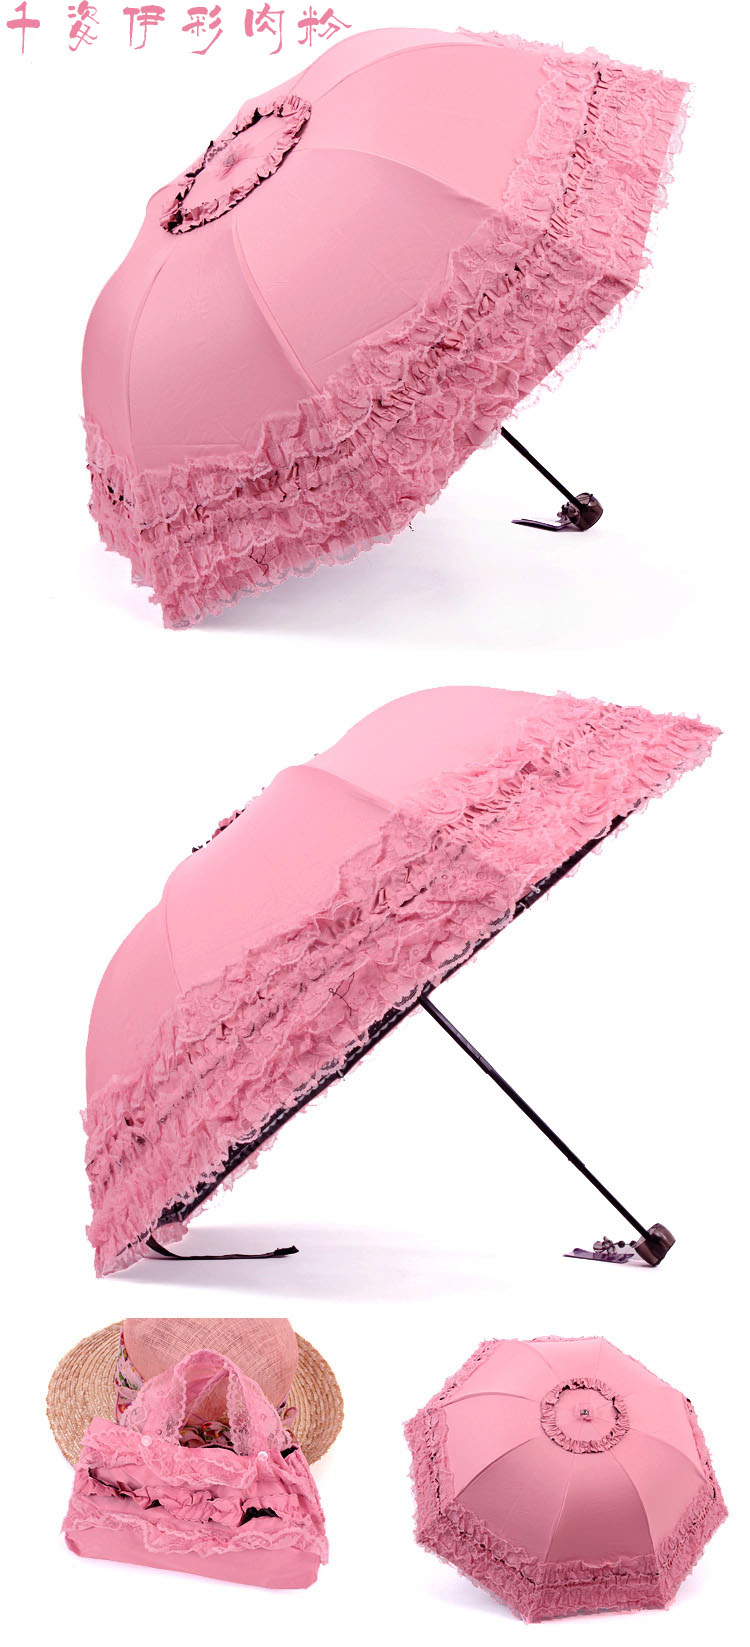 Uv Protected Parasol Sunny And Rainy Umbrella Rain Women Girls Haile Dzc1000w Induction Cooker Circuit Amplifiercircuitsaudio Htb1dic1rpxxxxxaaxxxq6xxfxxxosize161141height1647width750hash9ea41667b3fe90979cc652ac70841431